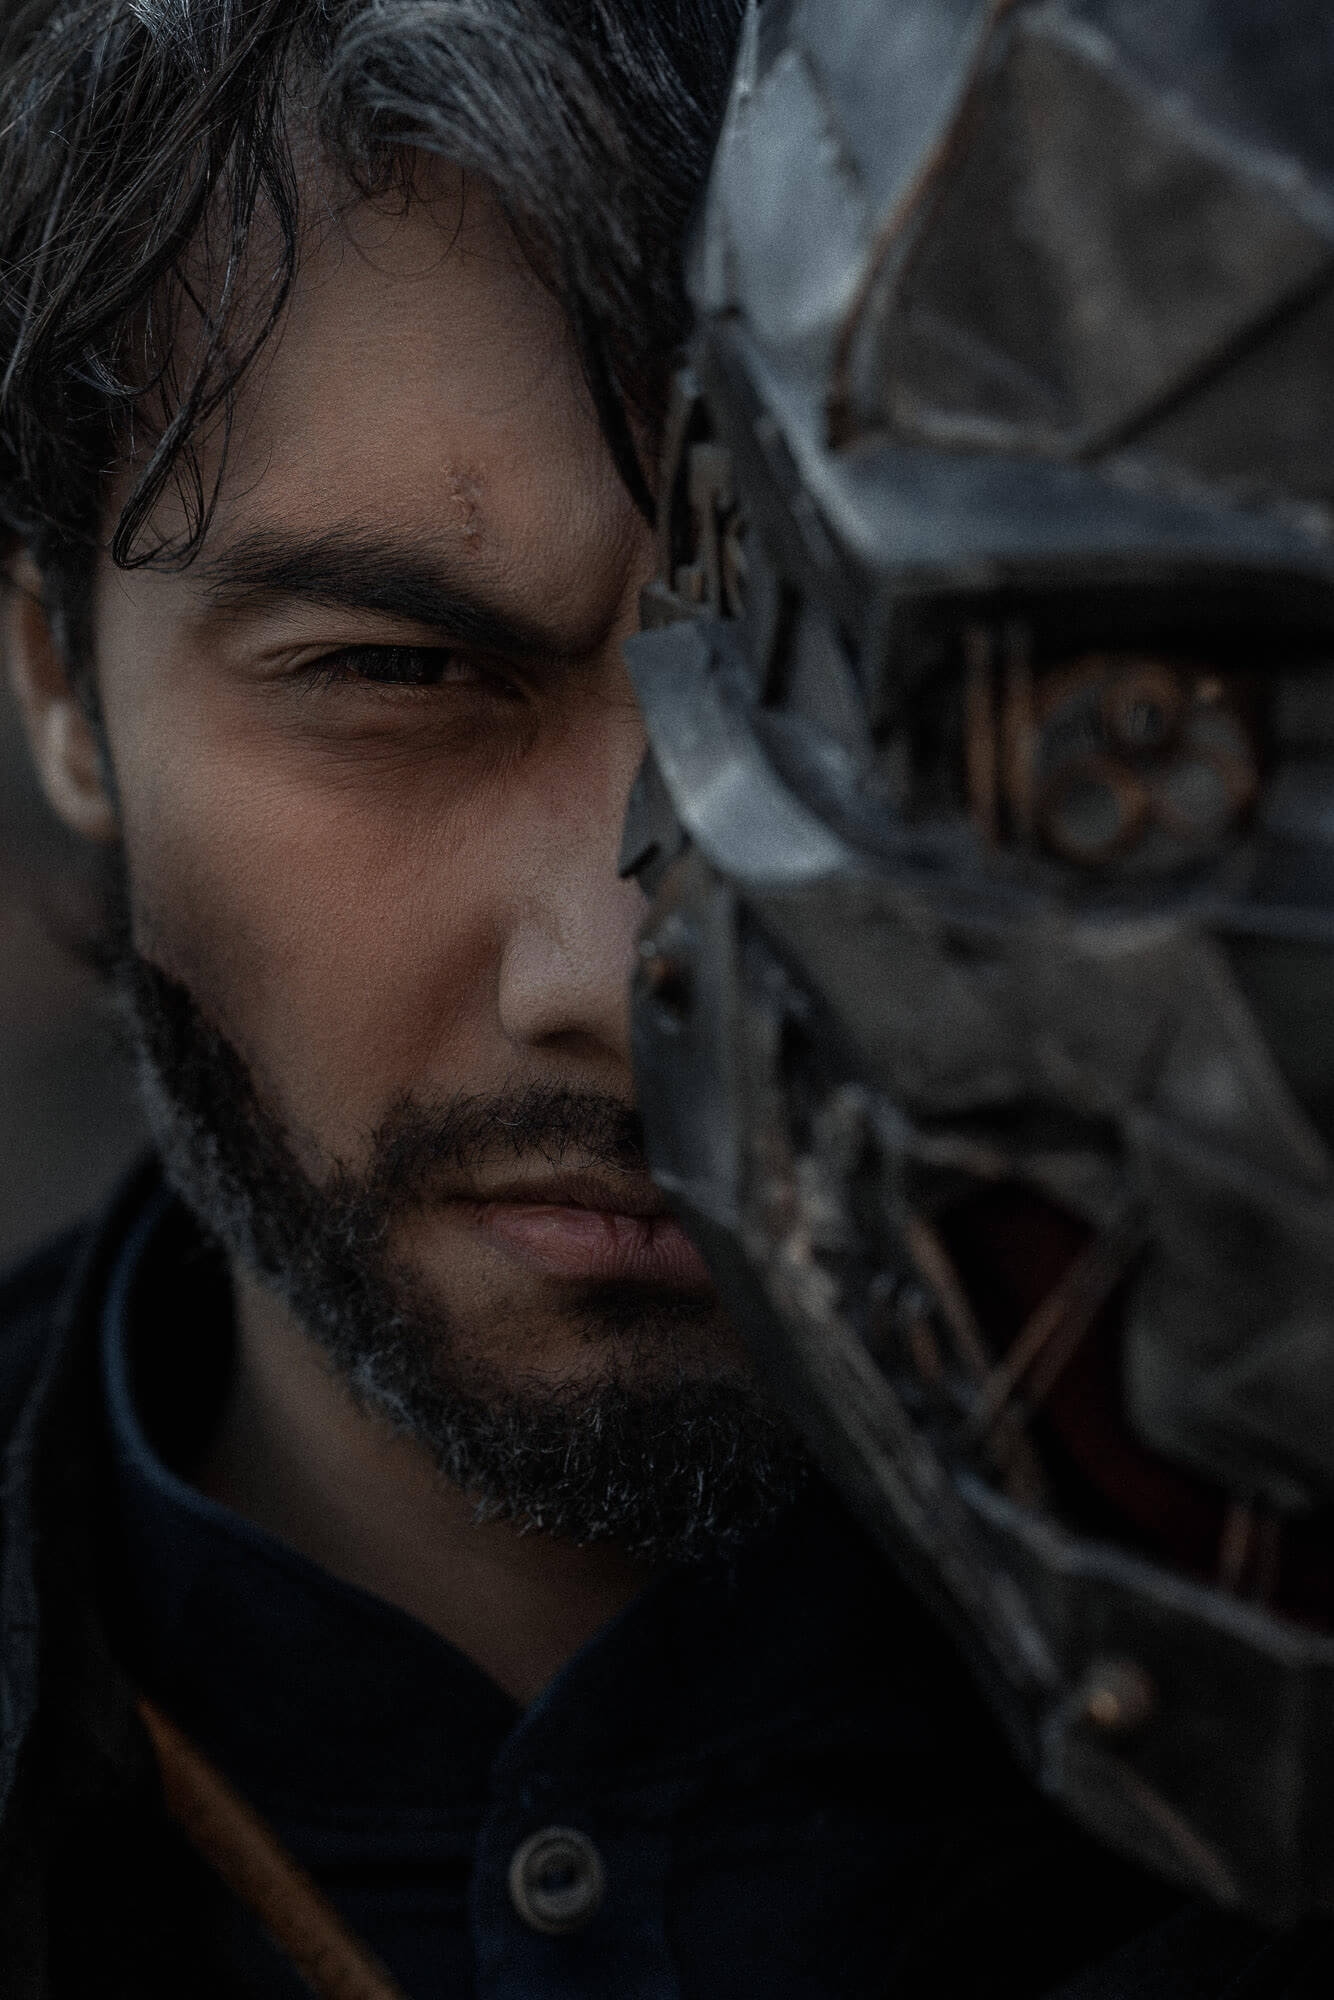 Dishonored Corvo Attano Cosplay